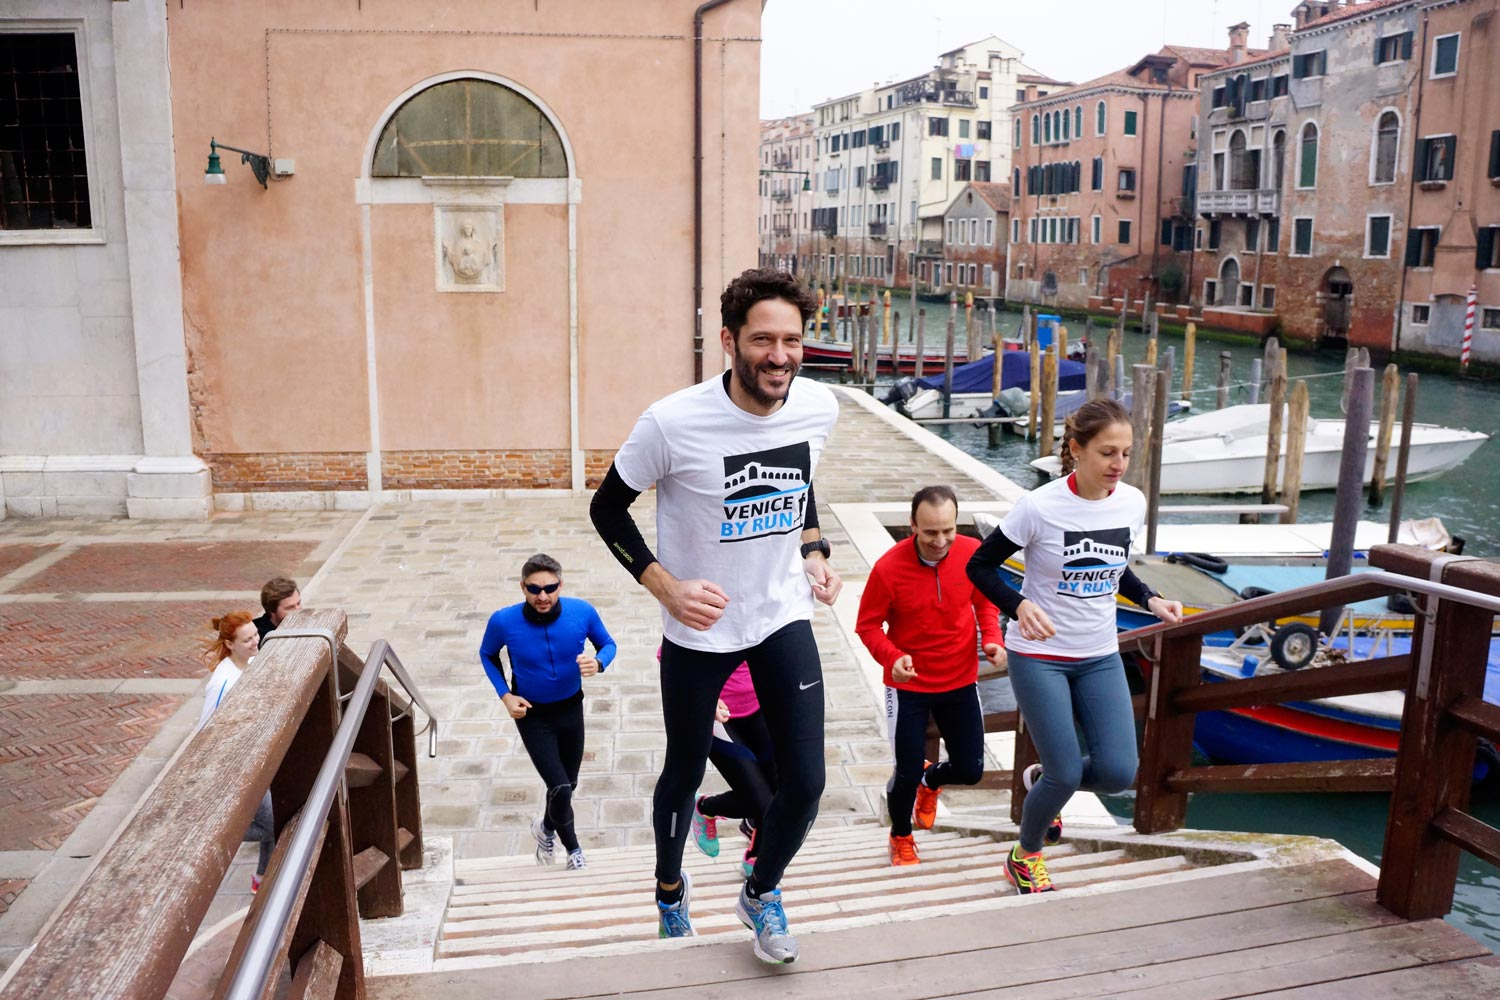 Runners in Venice crossing a bridge